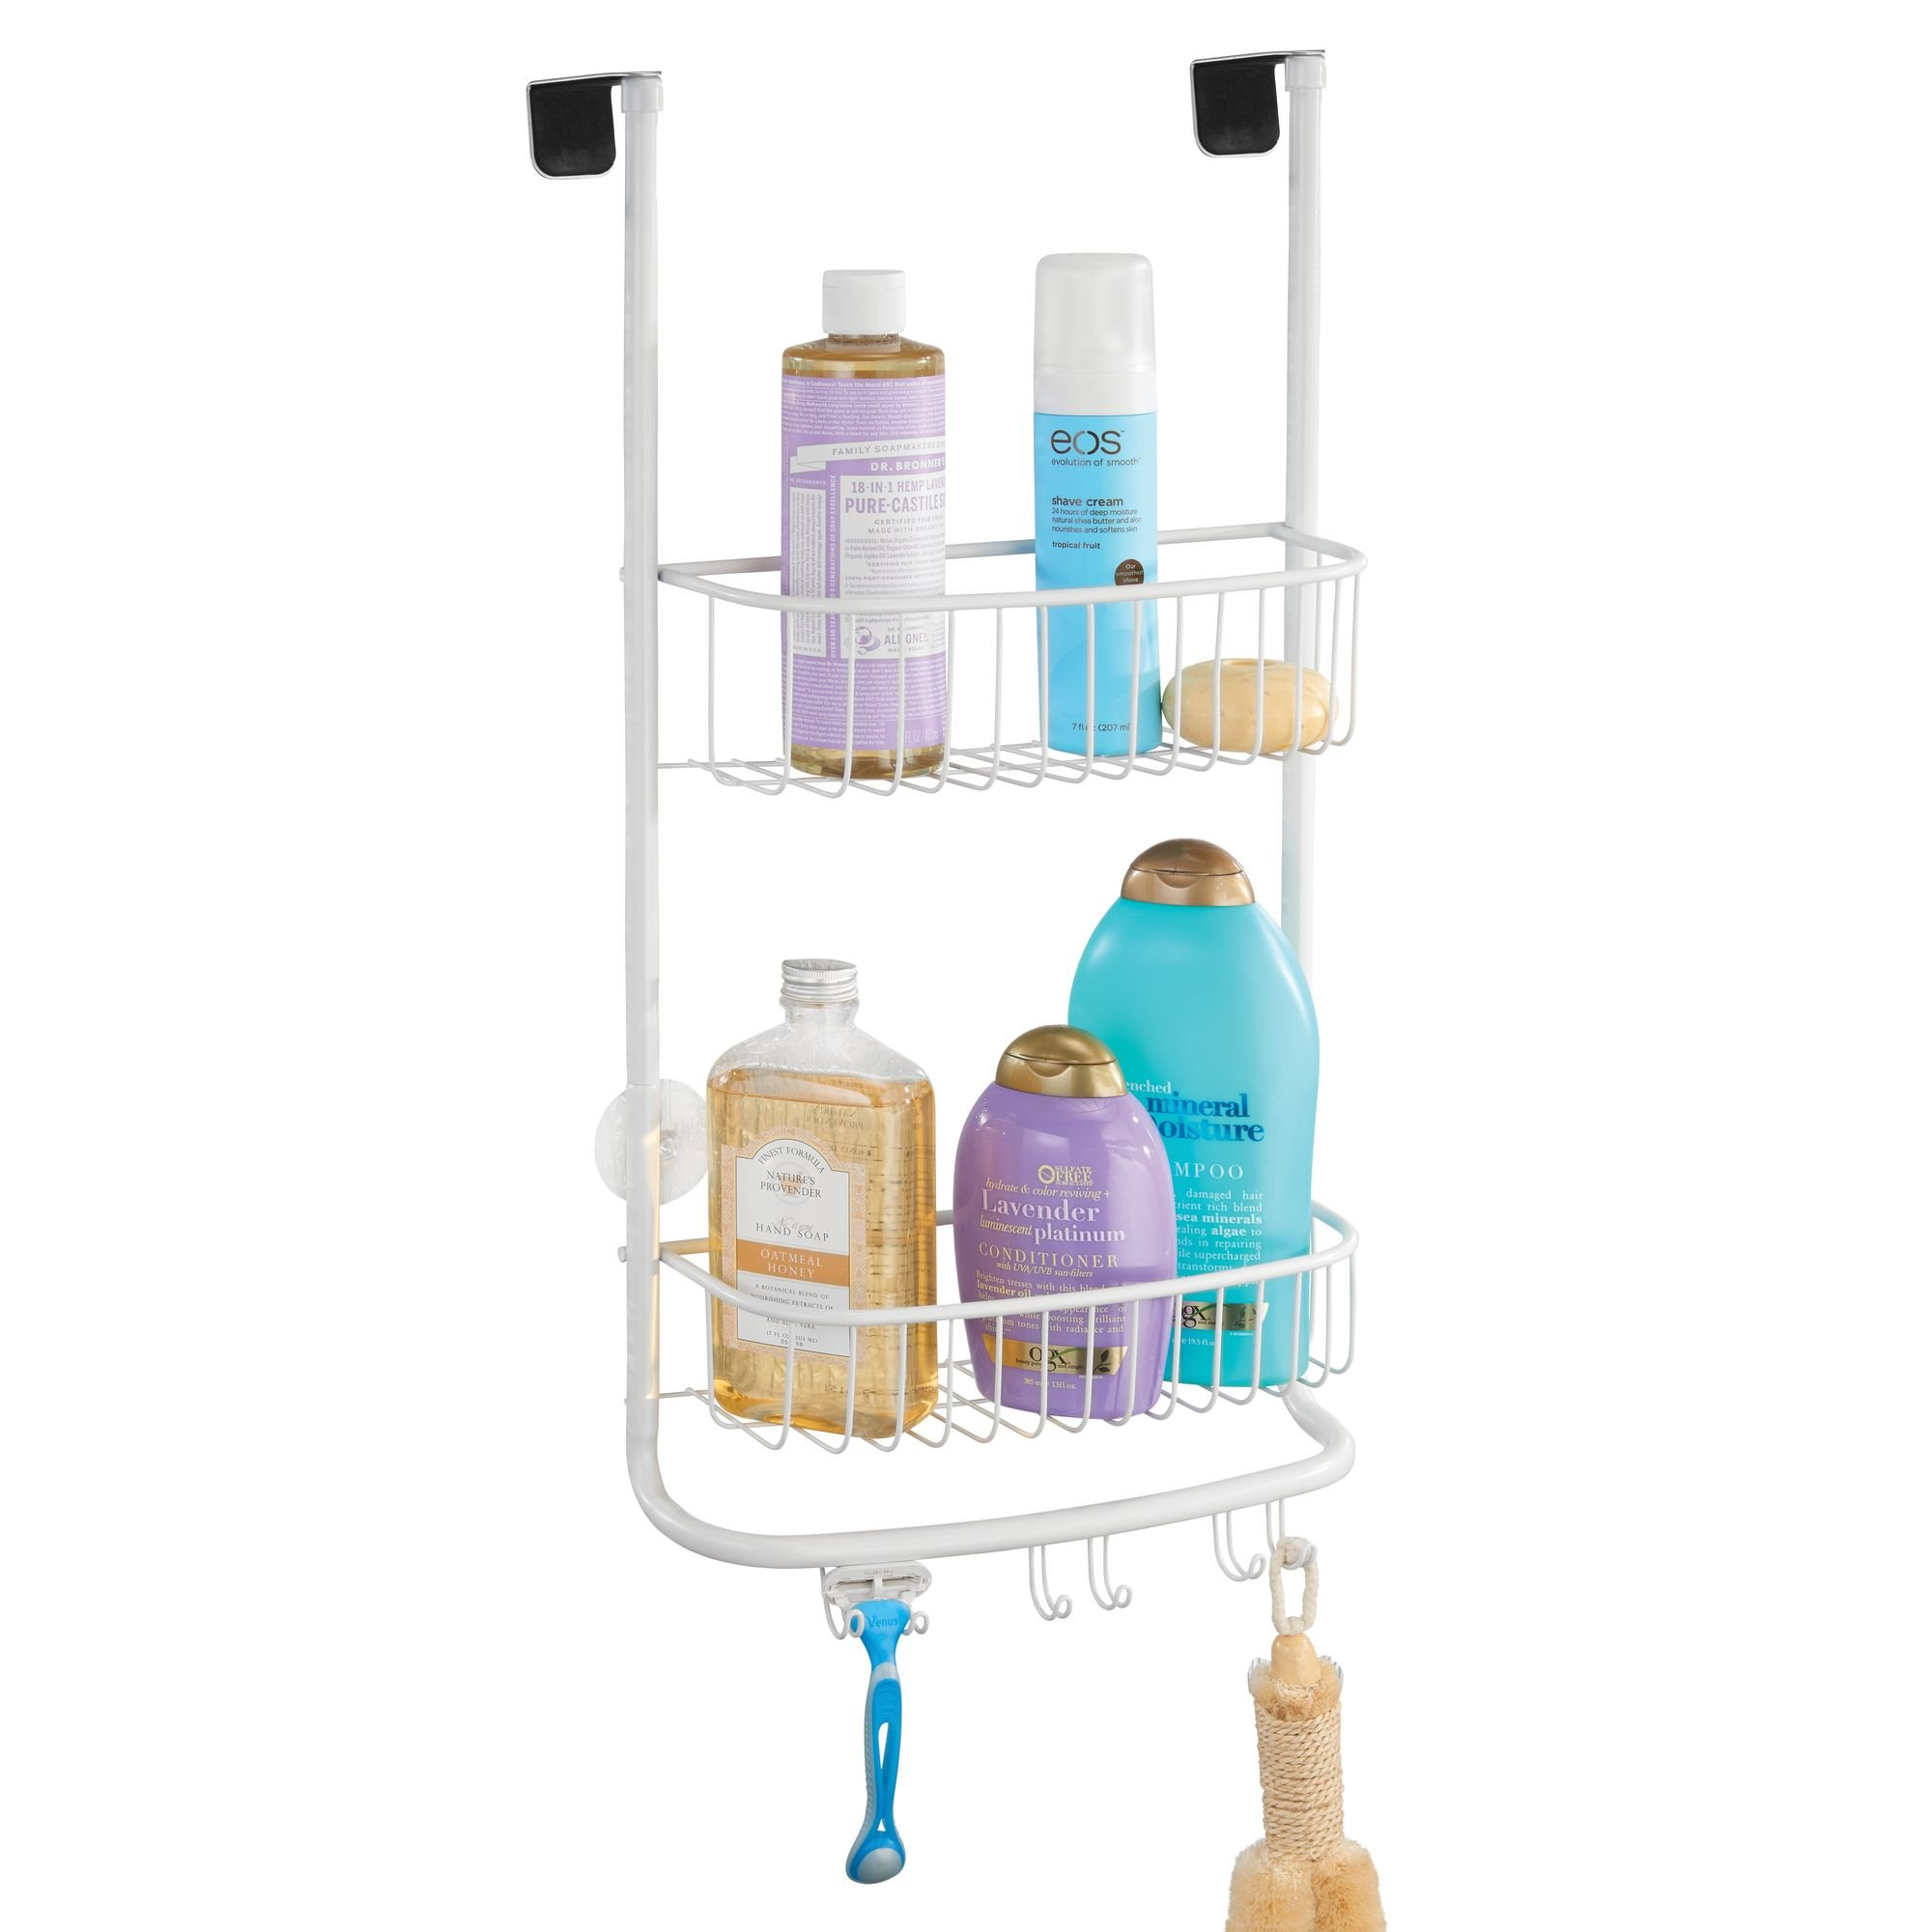 mDesign Modern Metal Bathroom Tub and Shower Caddy, Over Door Hanging Storage Organizer Center with 6 Built-in Hooks and 2 Baskets for Bathroom Shower Stalls, Bathtubs - Matte White Finish